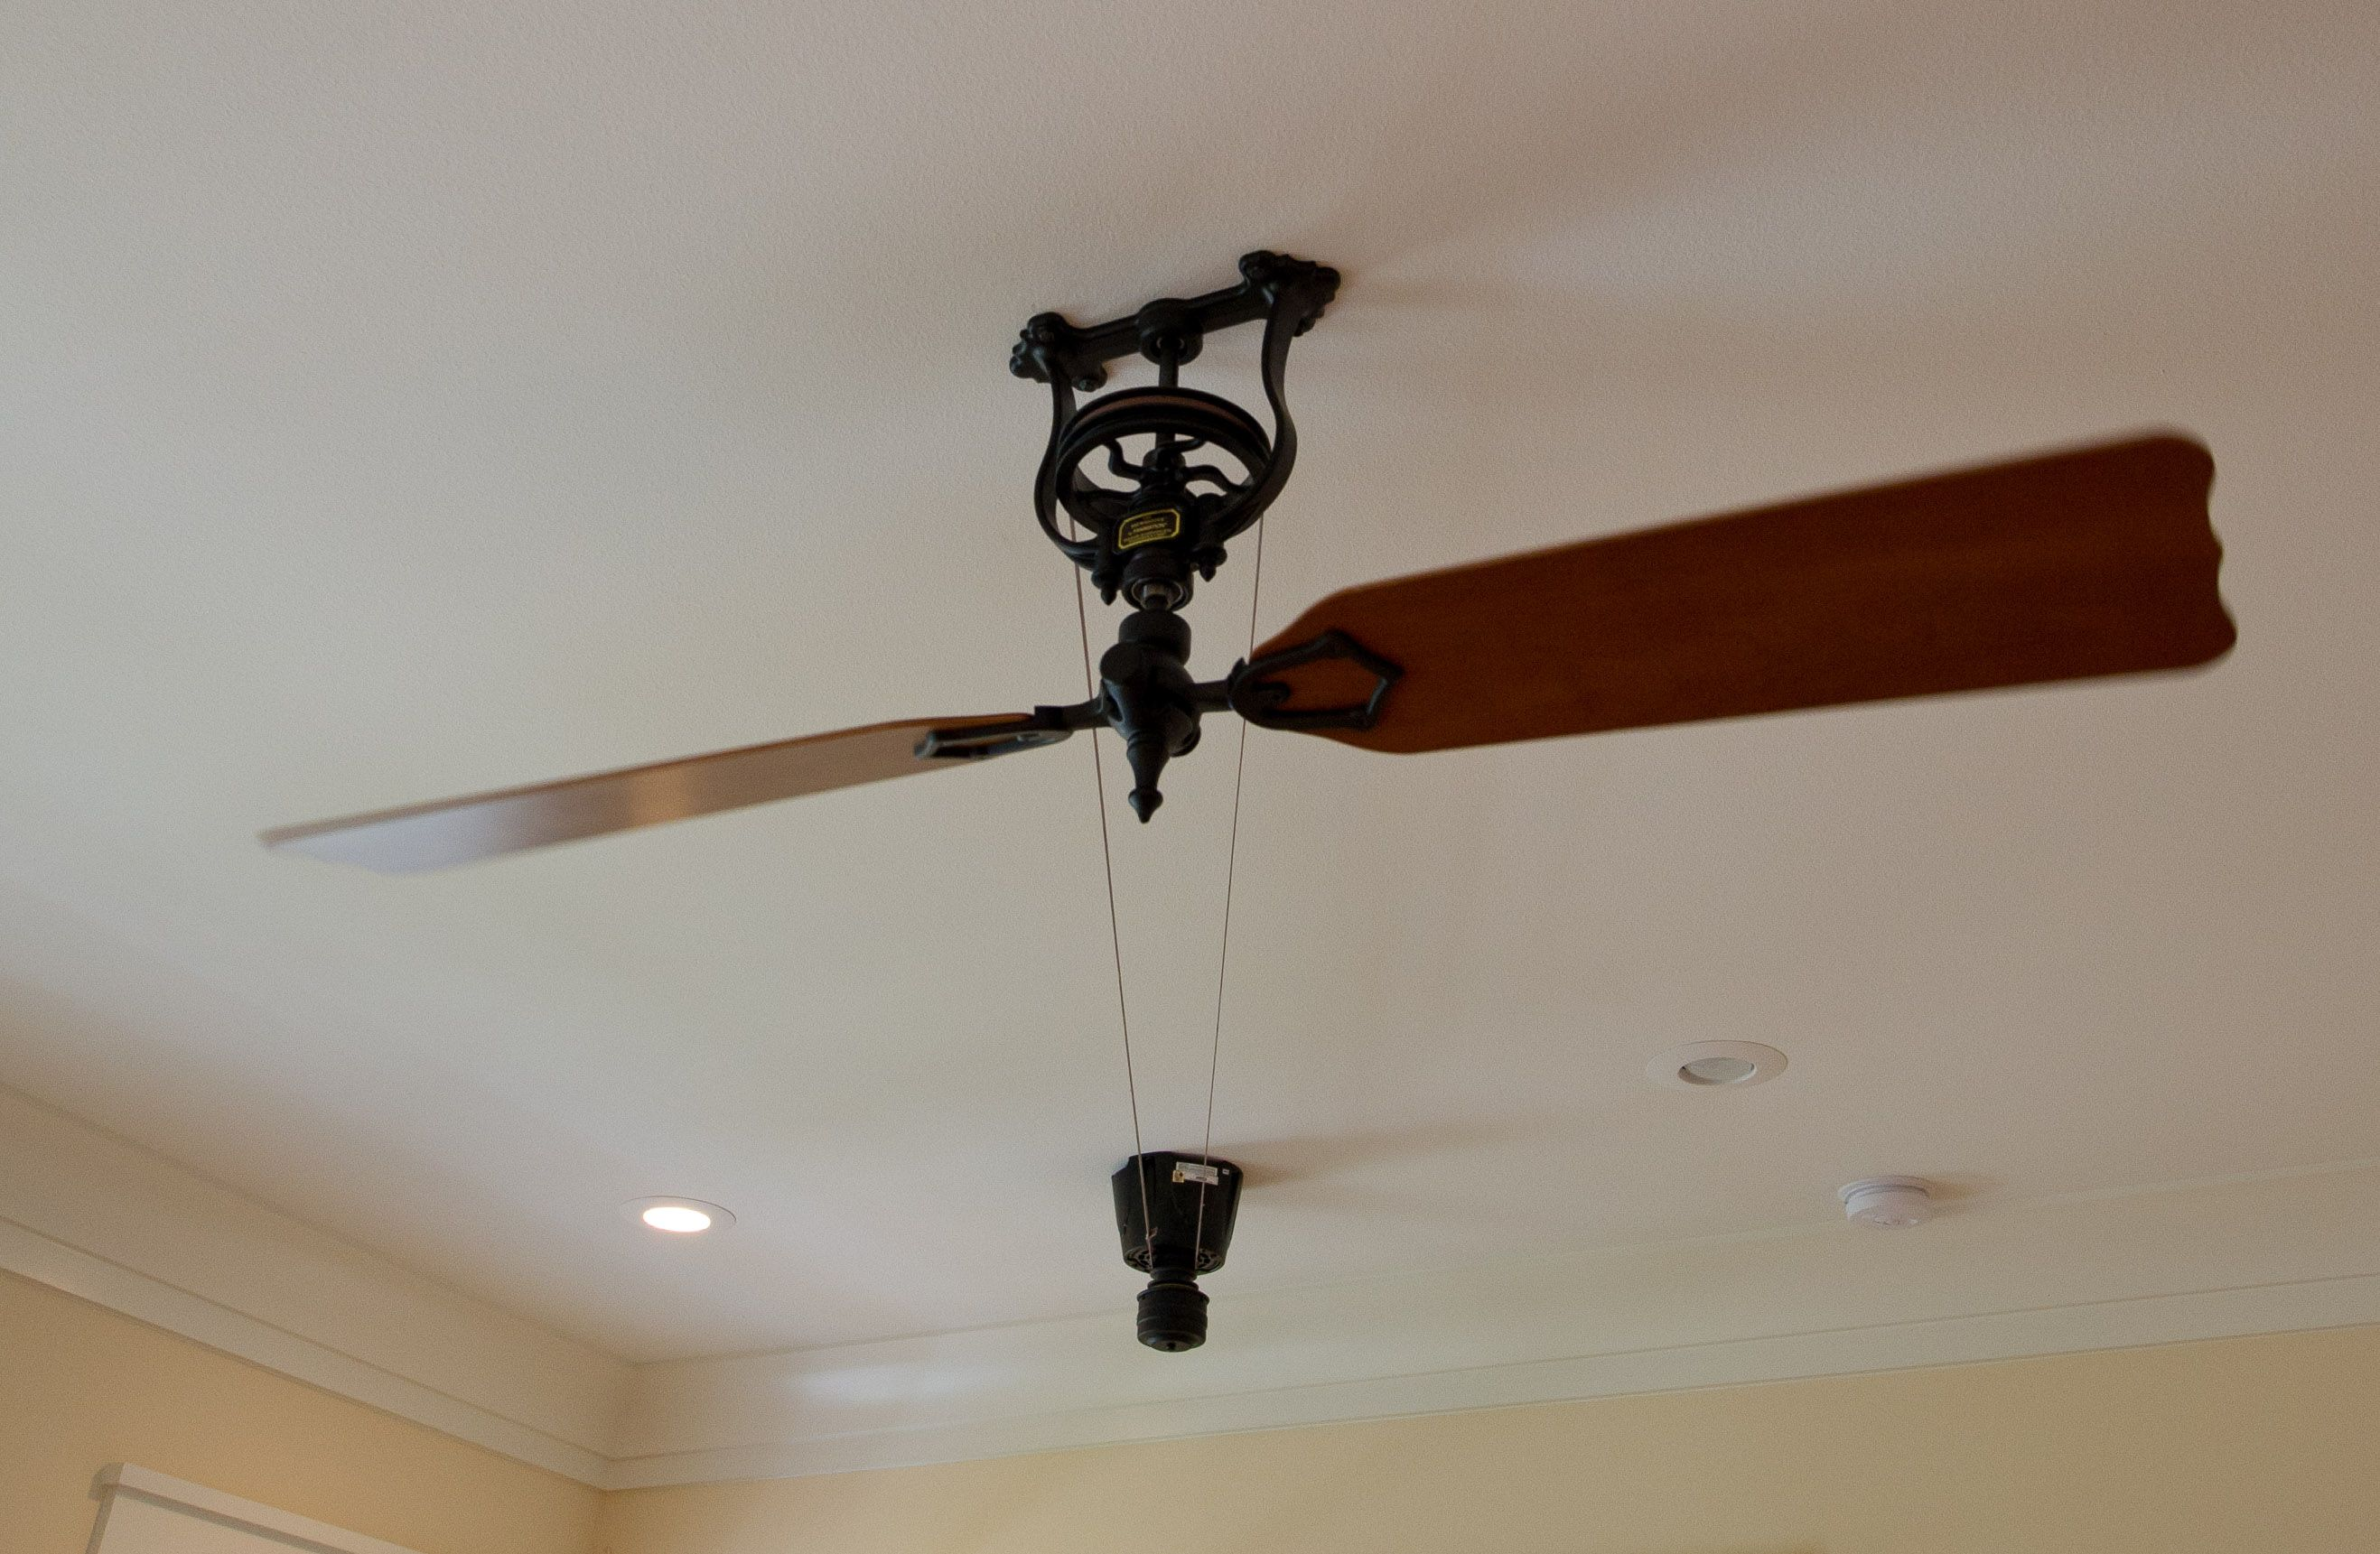 Vintage Fan With Motor And Pulley Belt Ceiling Fan Vintage